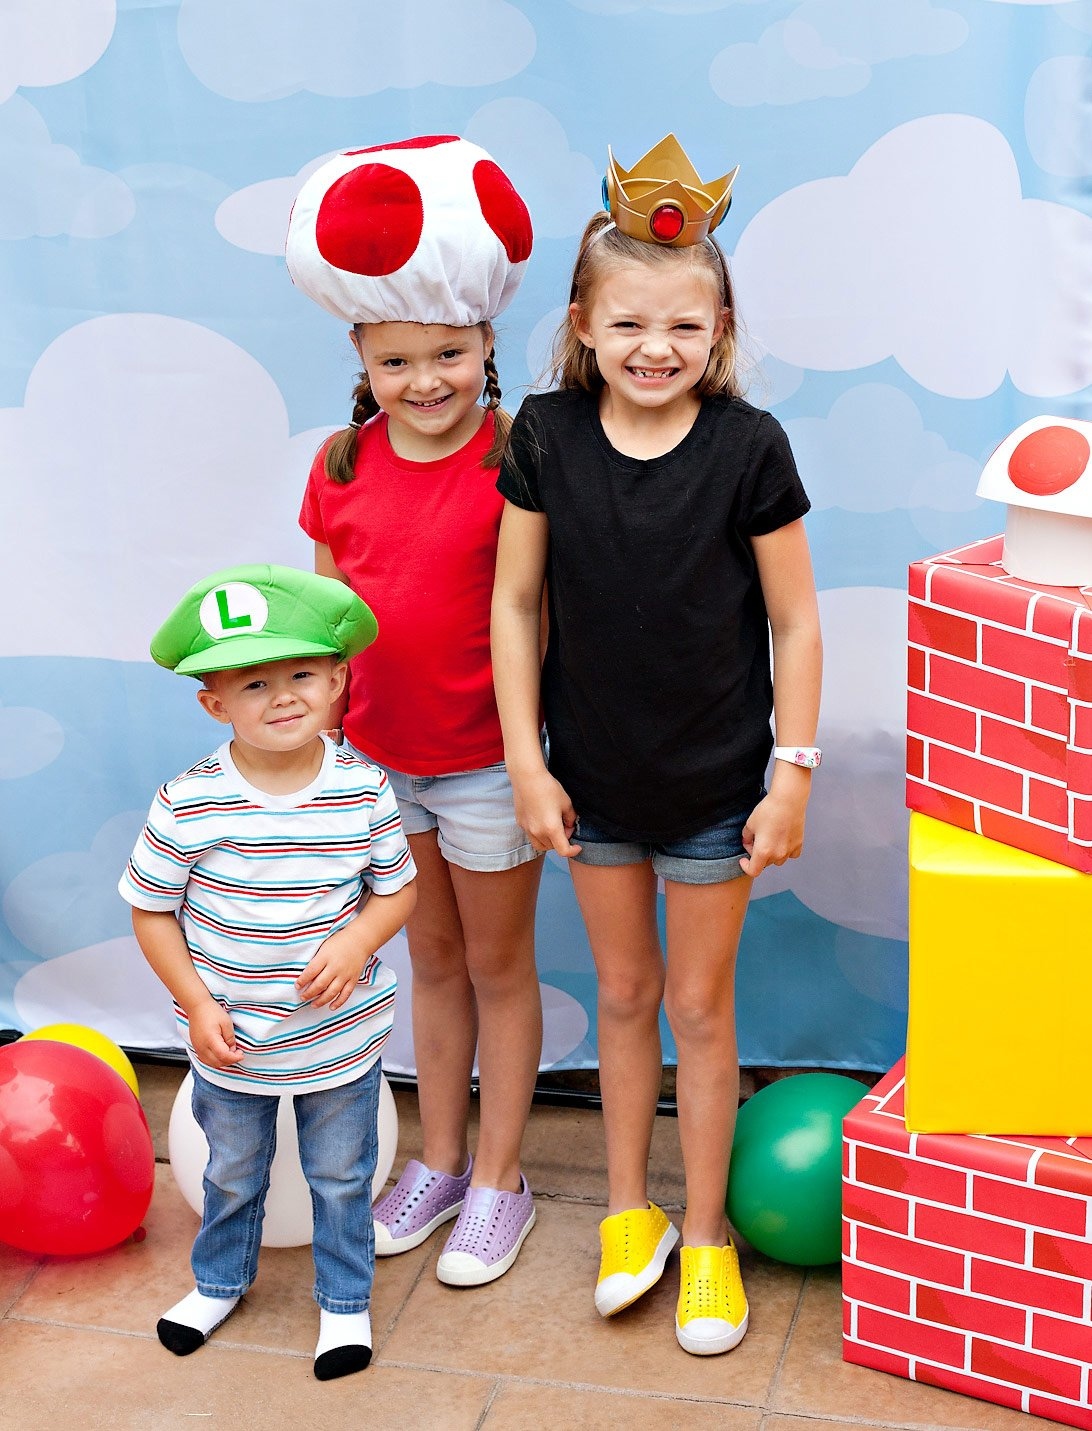 Super Mario Inspired Party Fun! 12 Creative Ideas (Part 2)